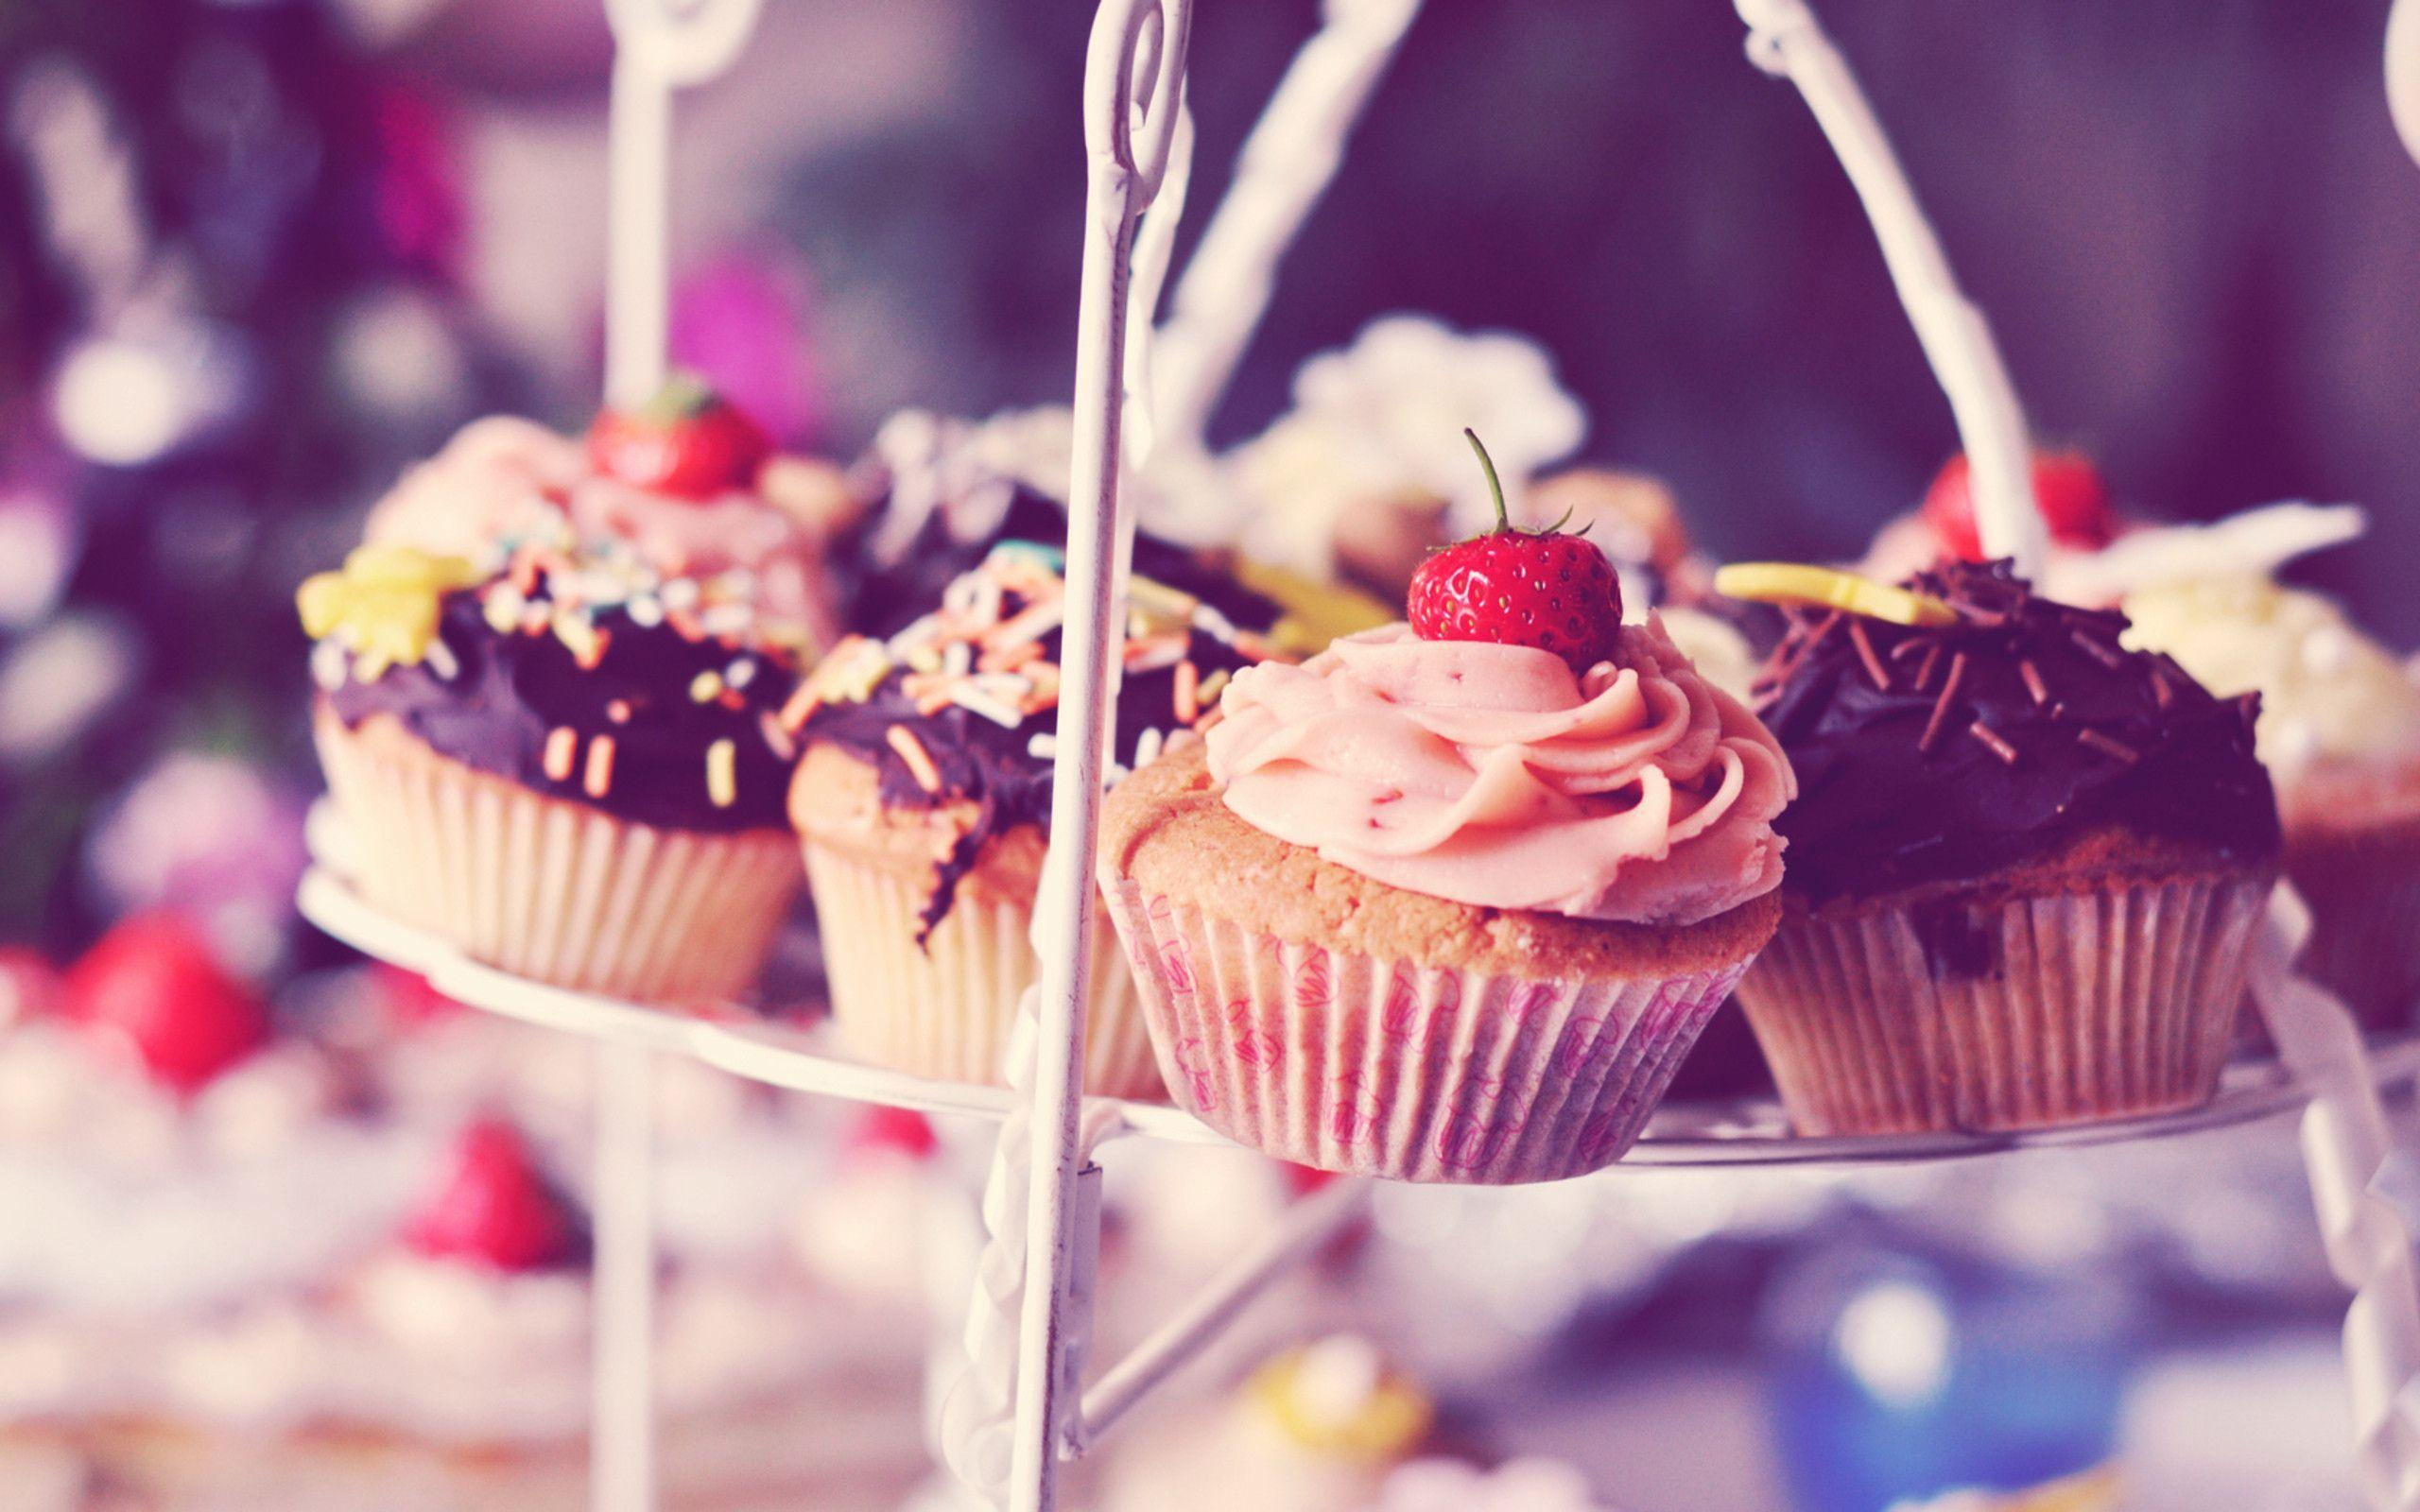 cupcake wallpapers - wallpaper cave